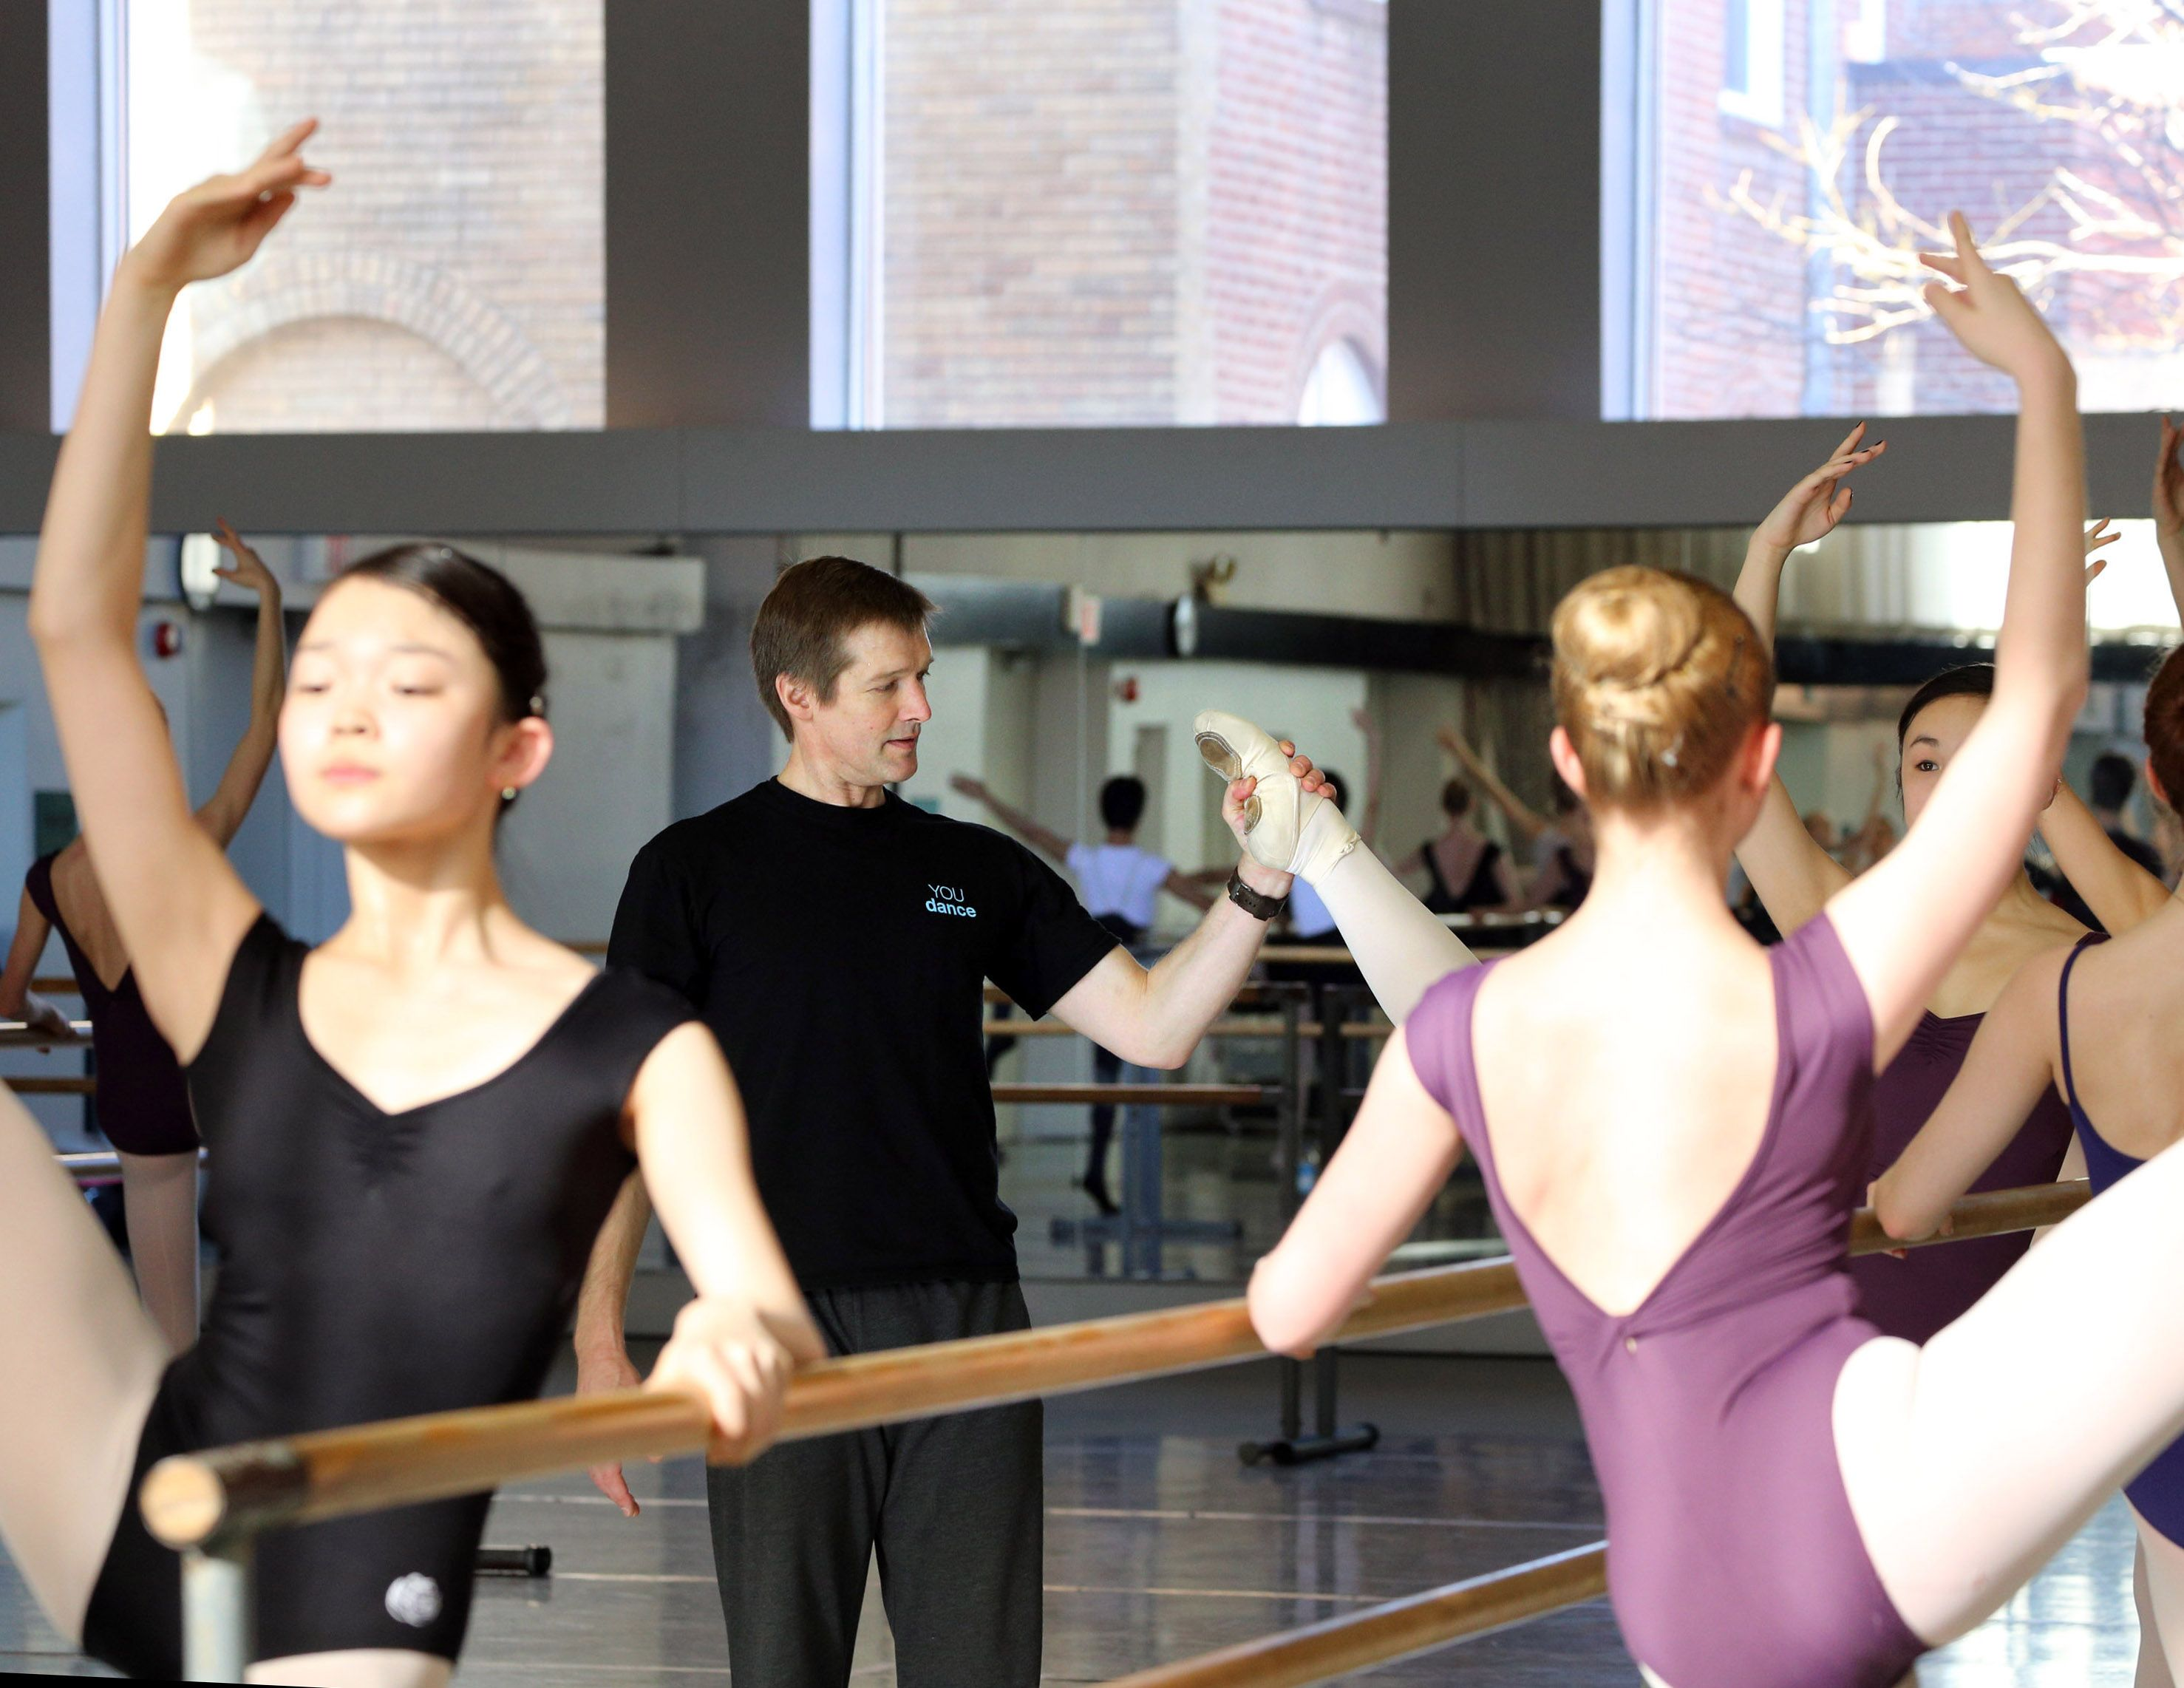 Lindsay Fischer The National Ballet Of Canada Ballet Master And Artistic Director Of You Dance Conducting A Backless Dress Formal Formal Dresses Prom Dresses